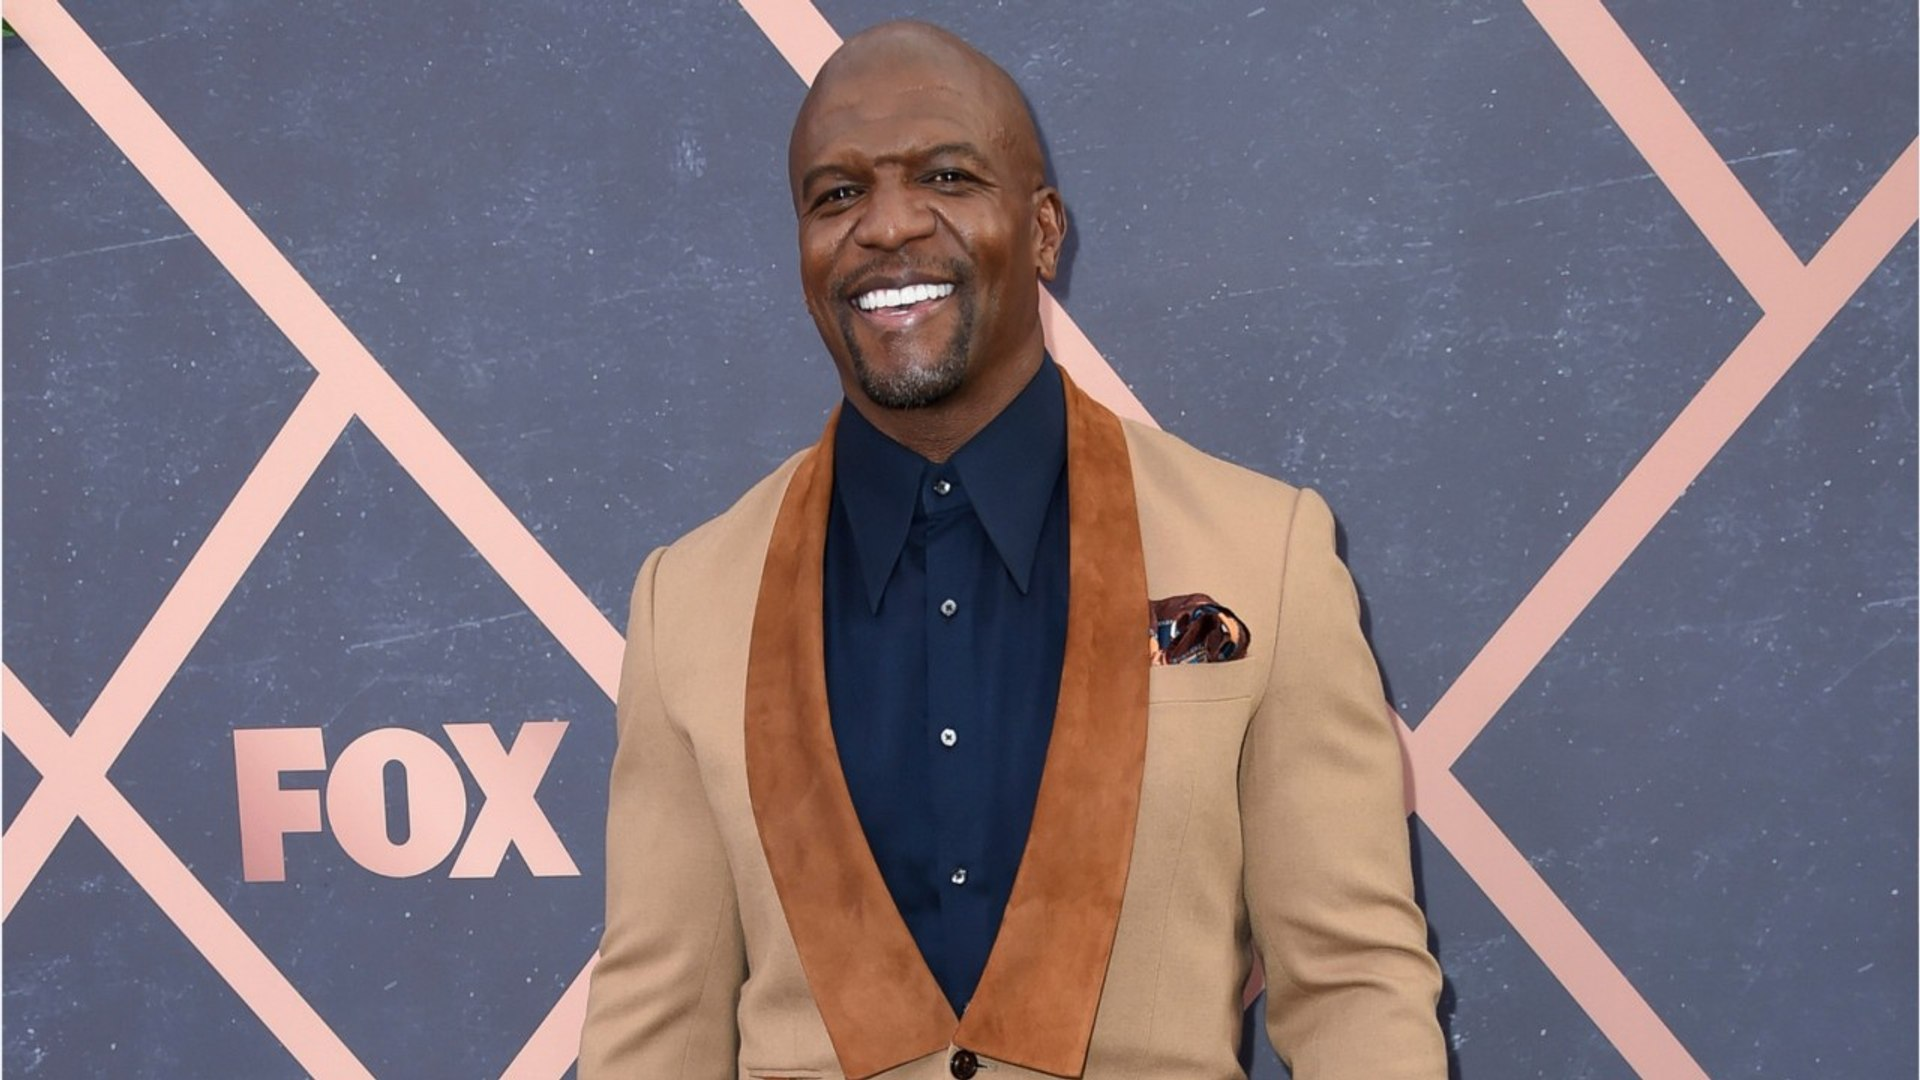 Terry Crews Files Police Report Against High Powered Agent For Sexual Assault